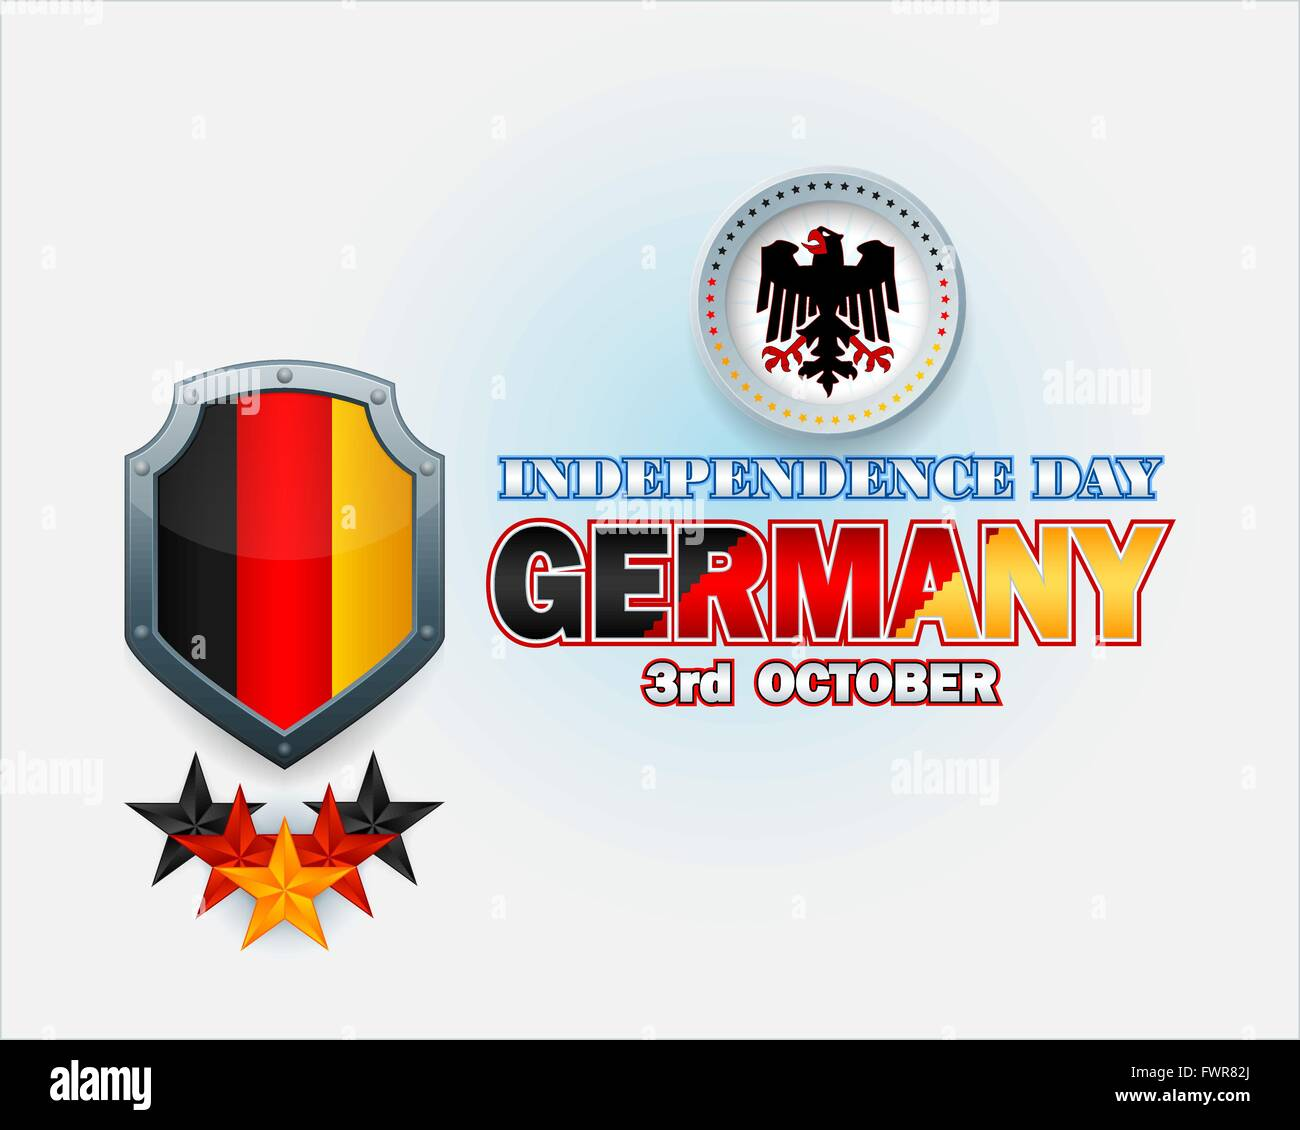 Independence Day design with shield in colors of the German flag, and German Eagle emblem for National Celebration - Stock Image